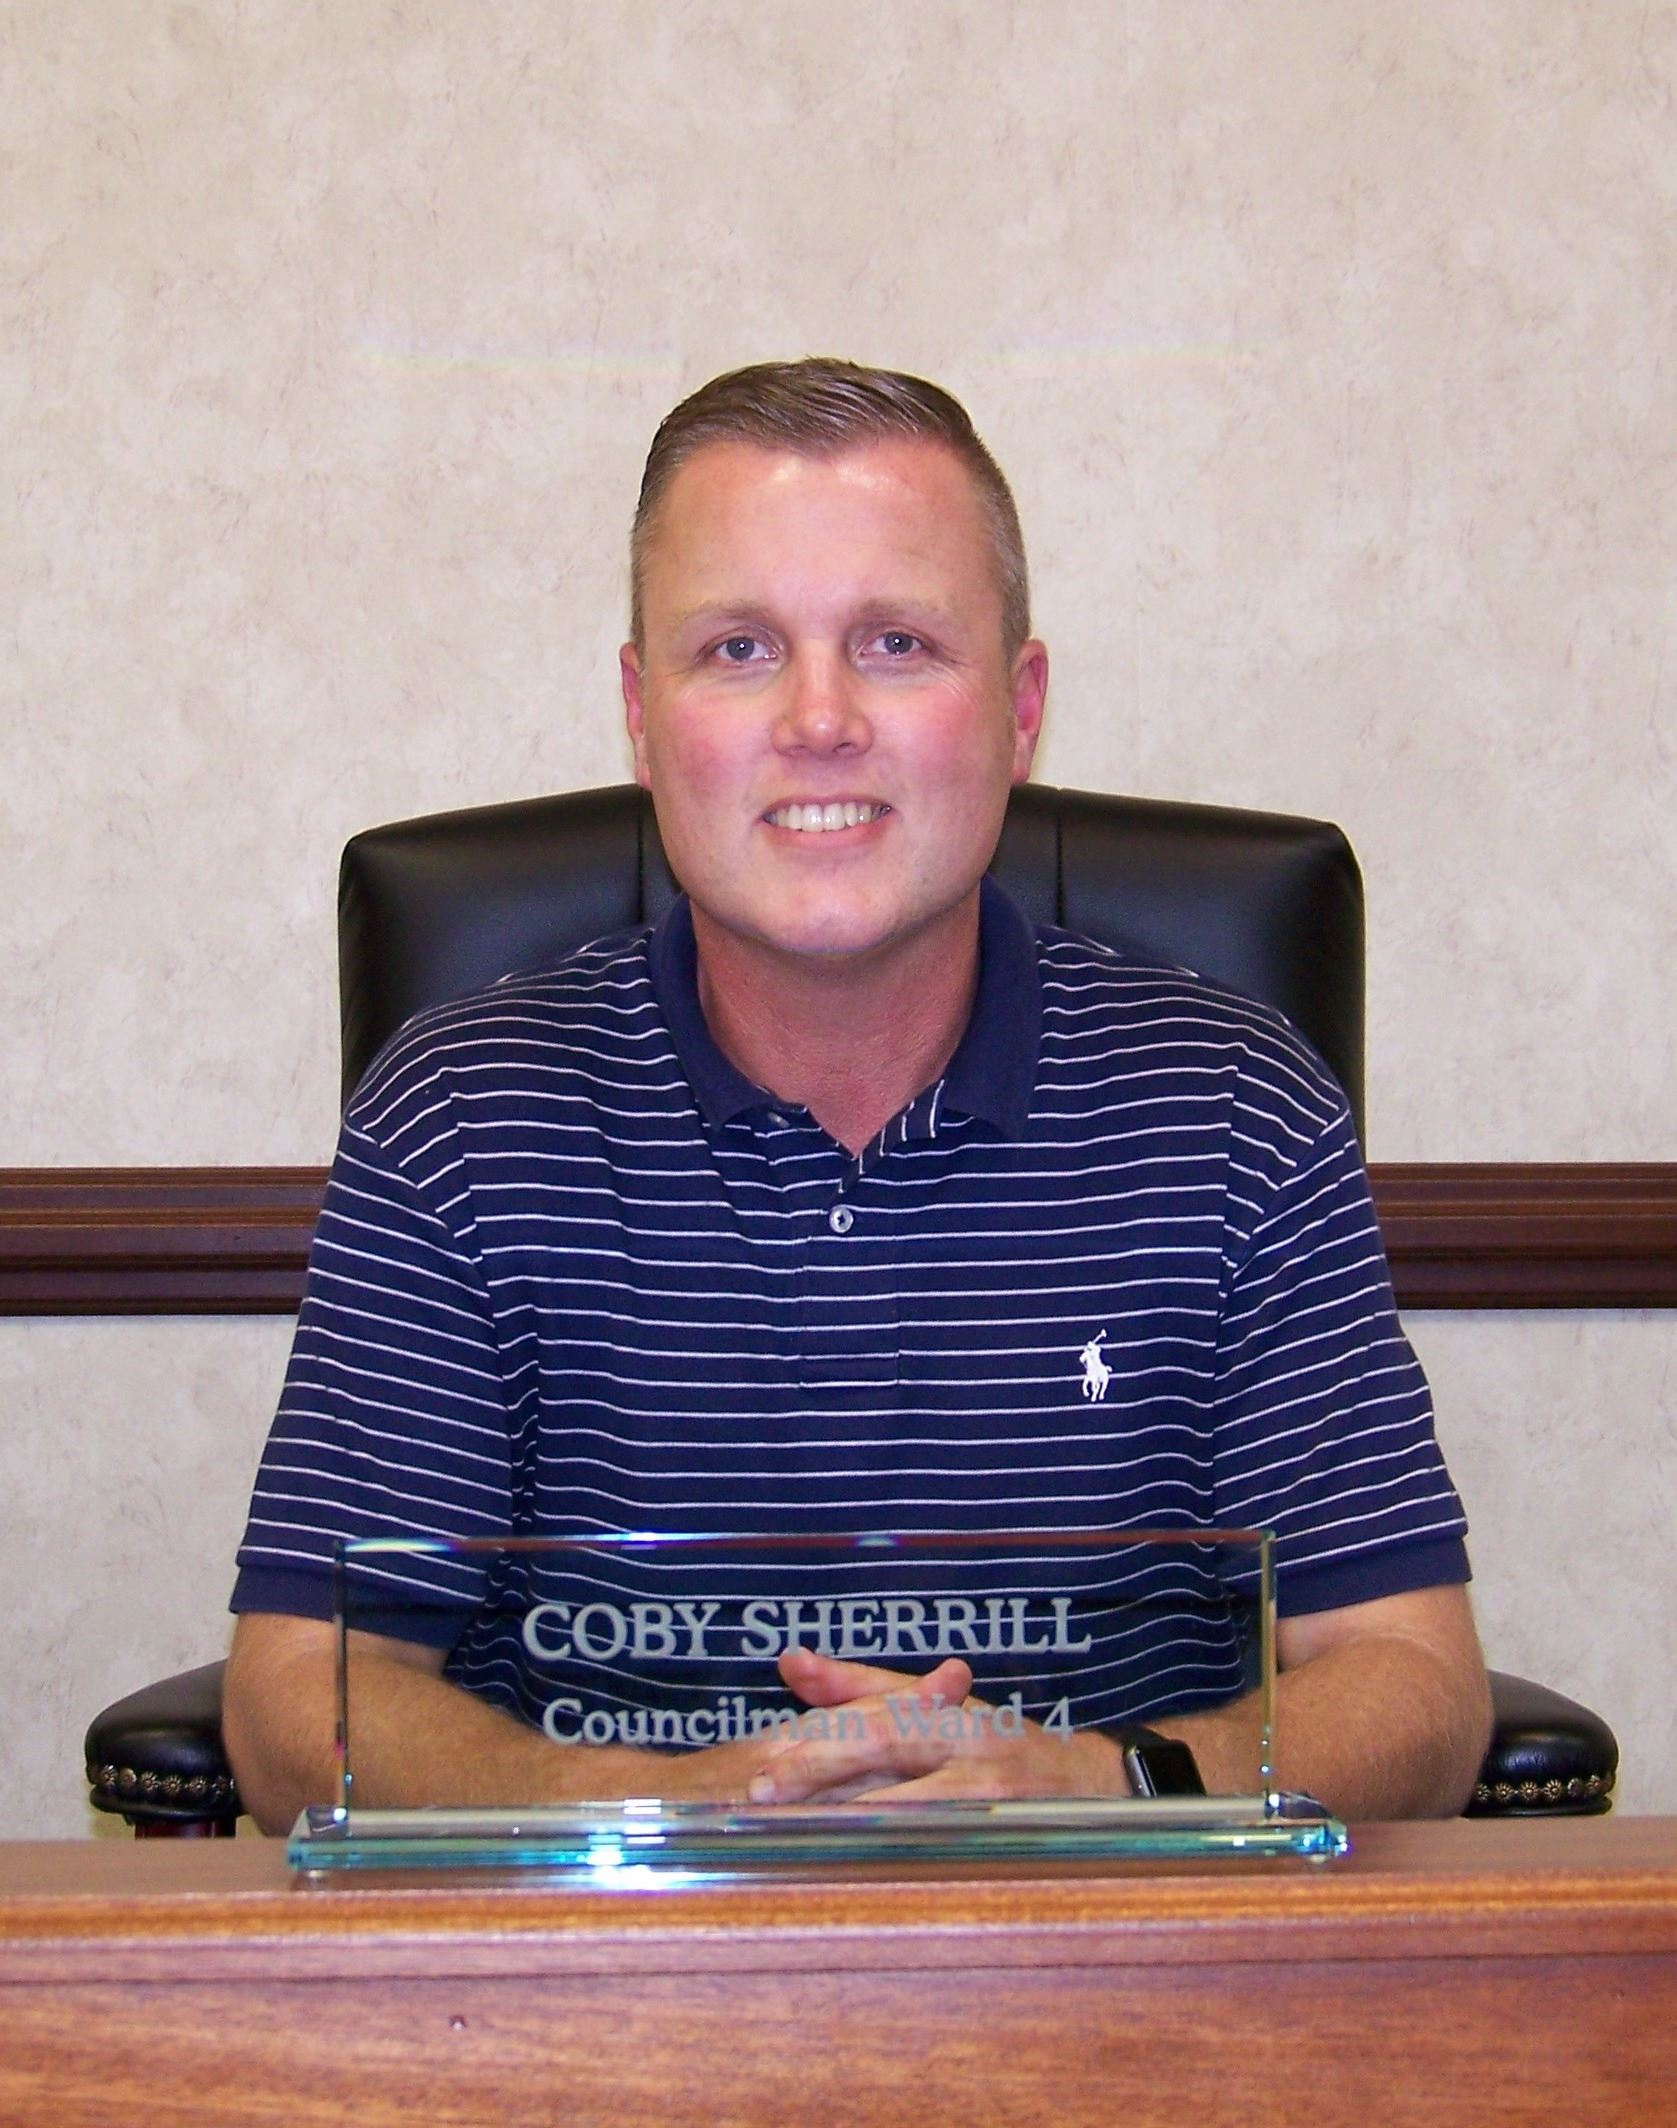 Councilman Coby Sherrill